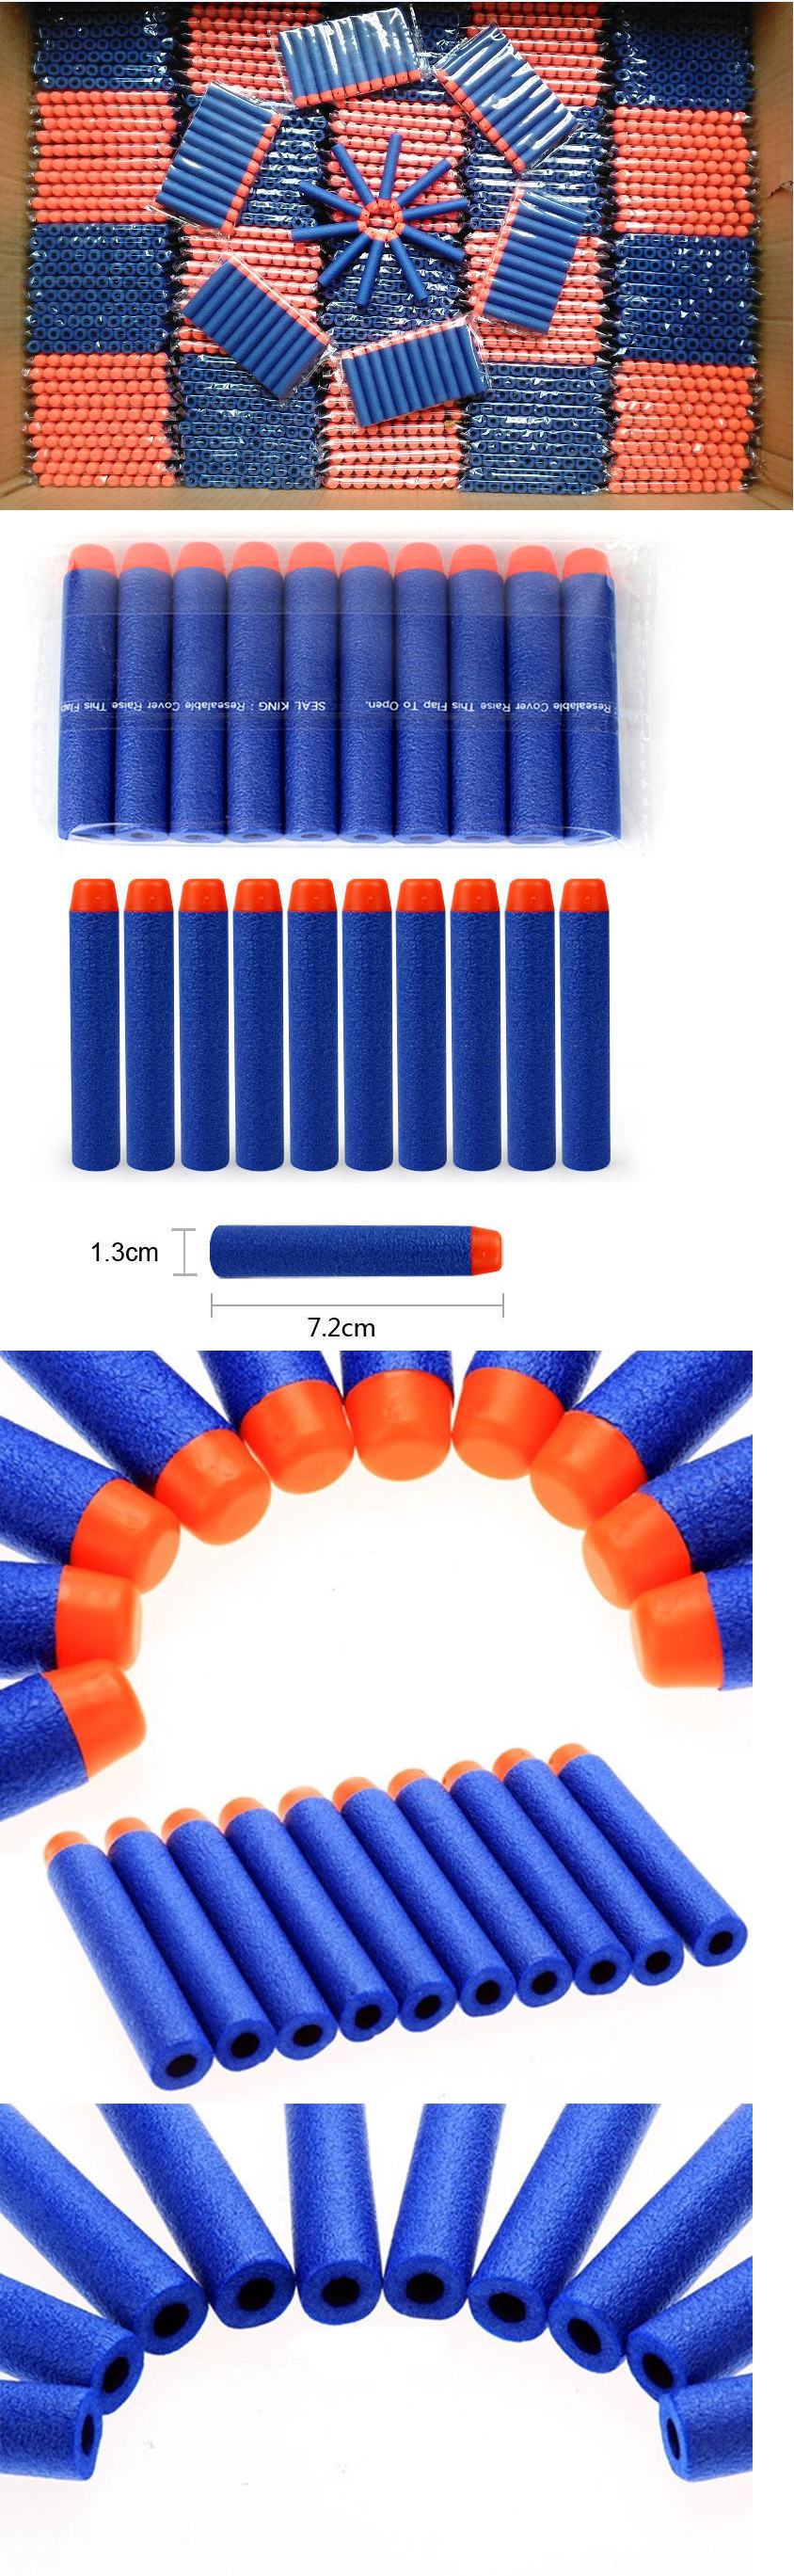 Pretend Play and Preschool Wholesale Kids Toy For Nerf N